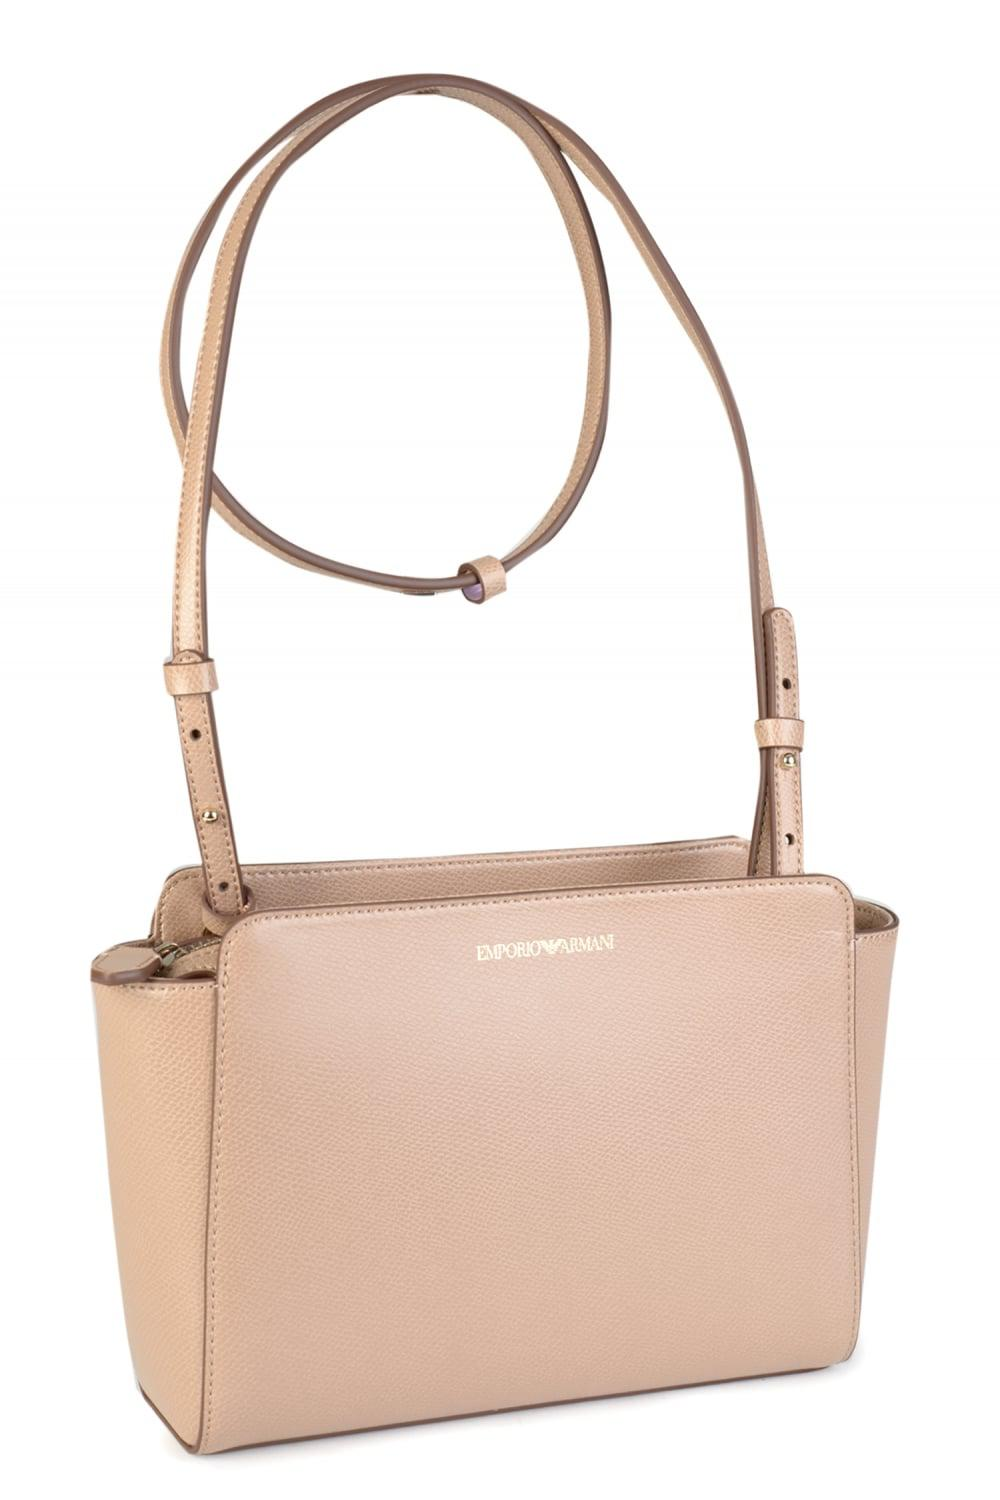 2f7f9bd6bbc3 Armani Emporio Womens Nude Shoulder Sling Bag in Natural - Lyst